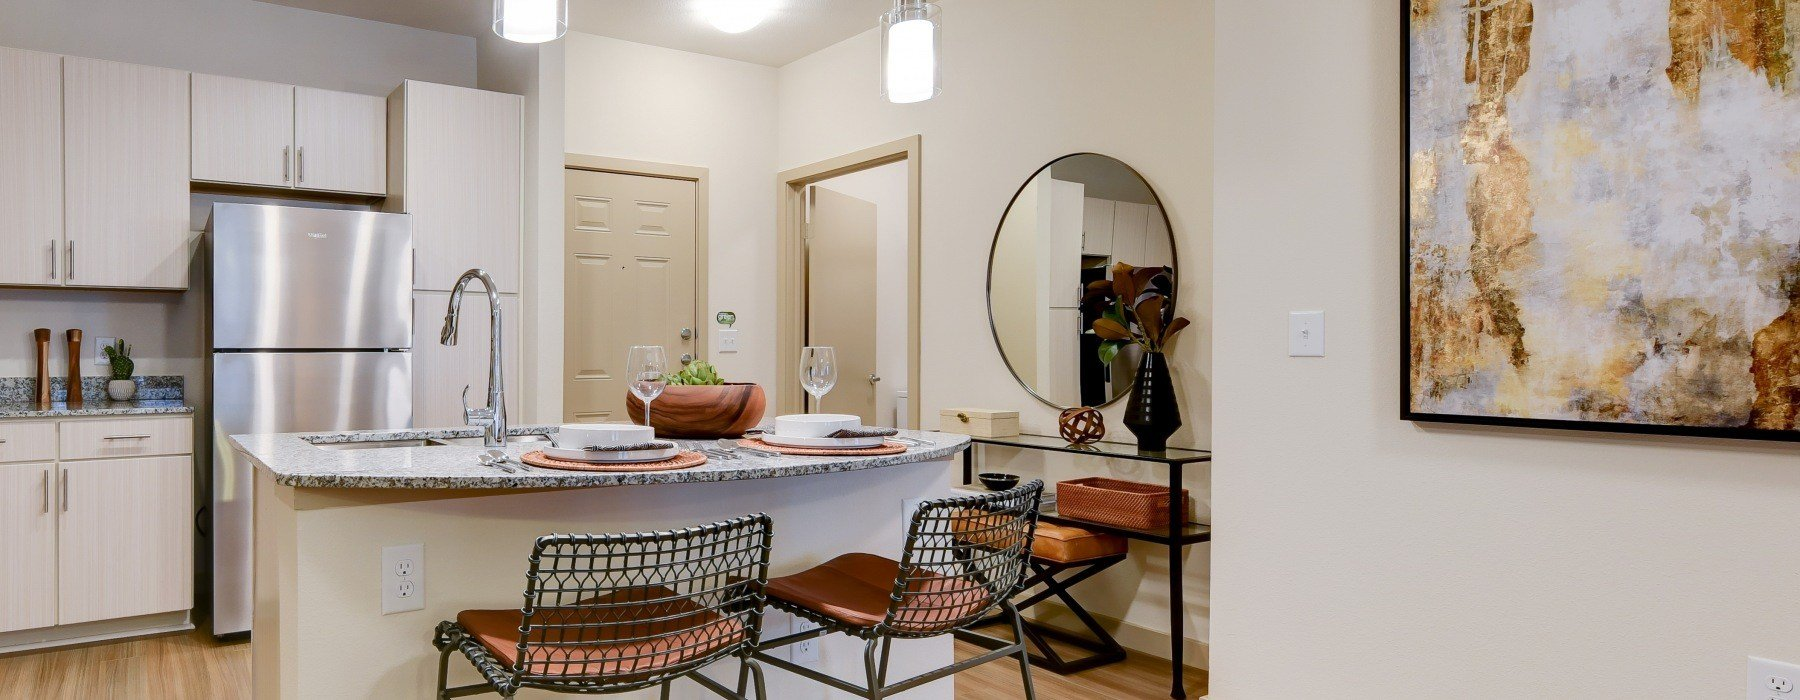 Best 1 2 3 Bedroom Apartments In San Antonio Tx Dalian 151 With Pictures